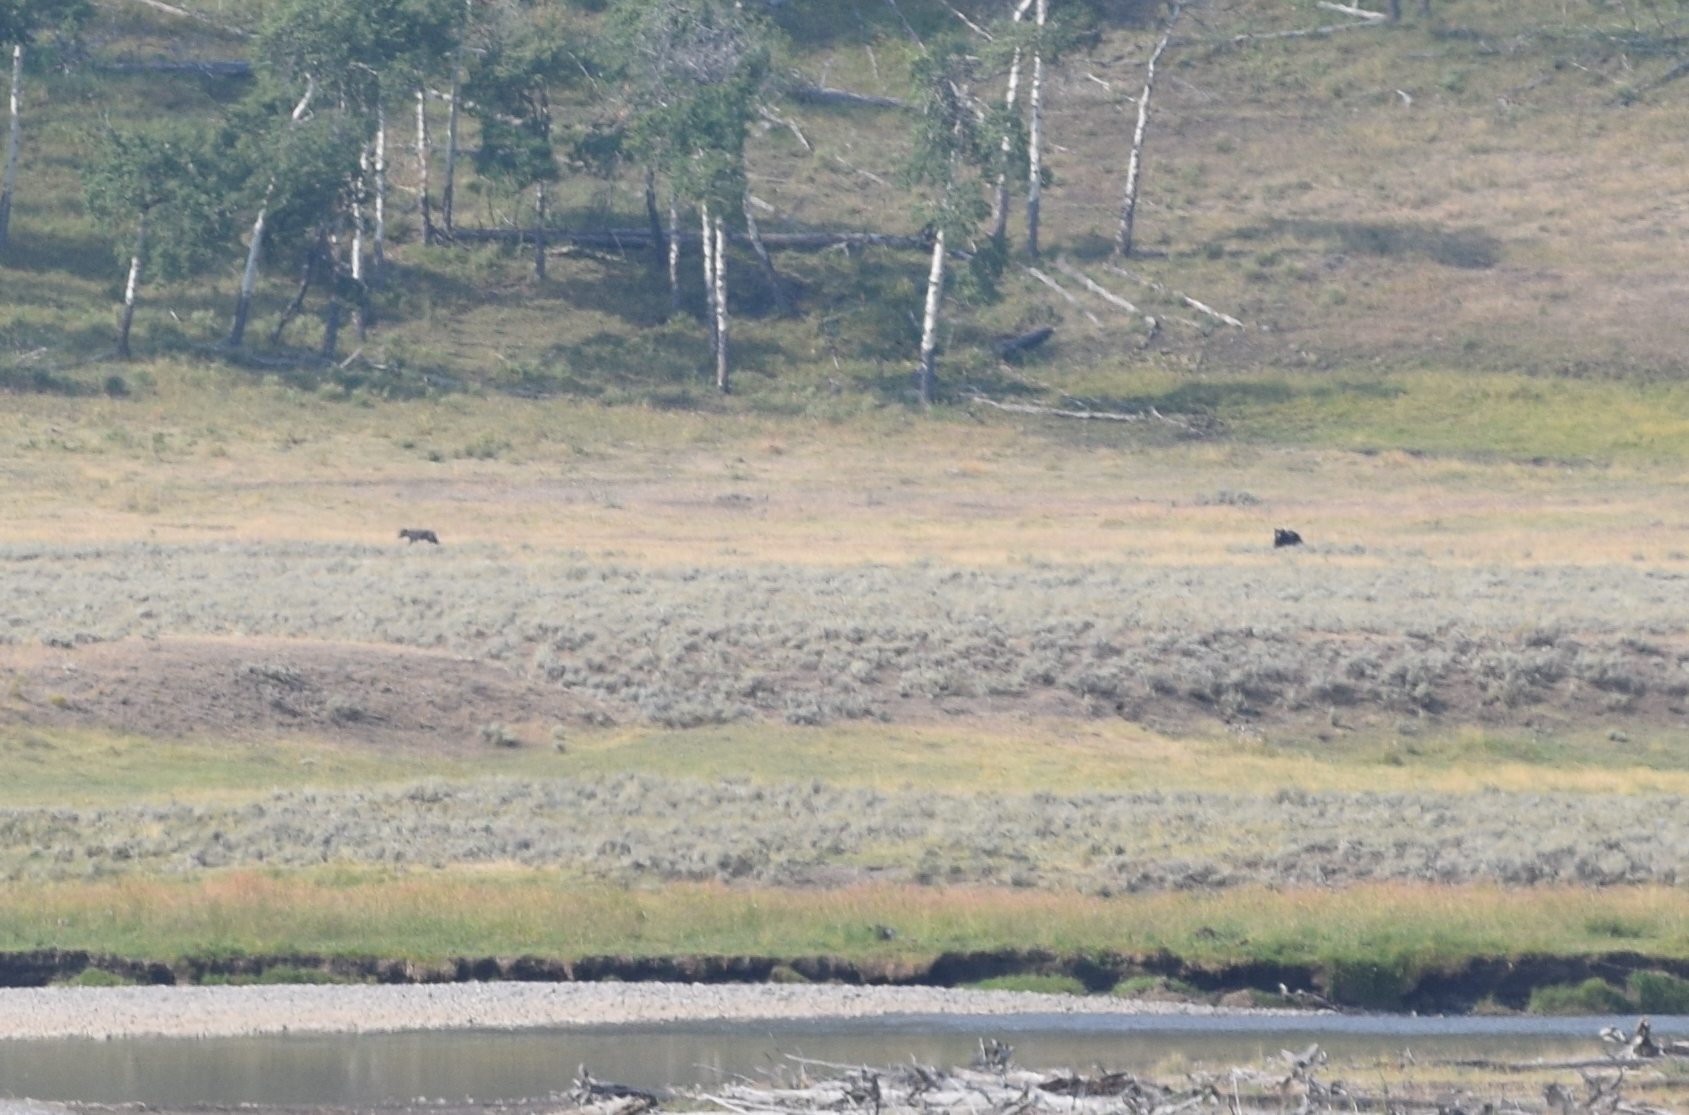 The wolf is the dark speck on the left, and the bear is the one on the right. Unfortunately, I only have a 200mm lens and they were around a kilometer away.